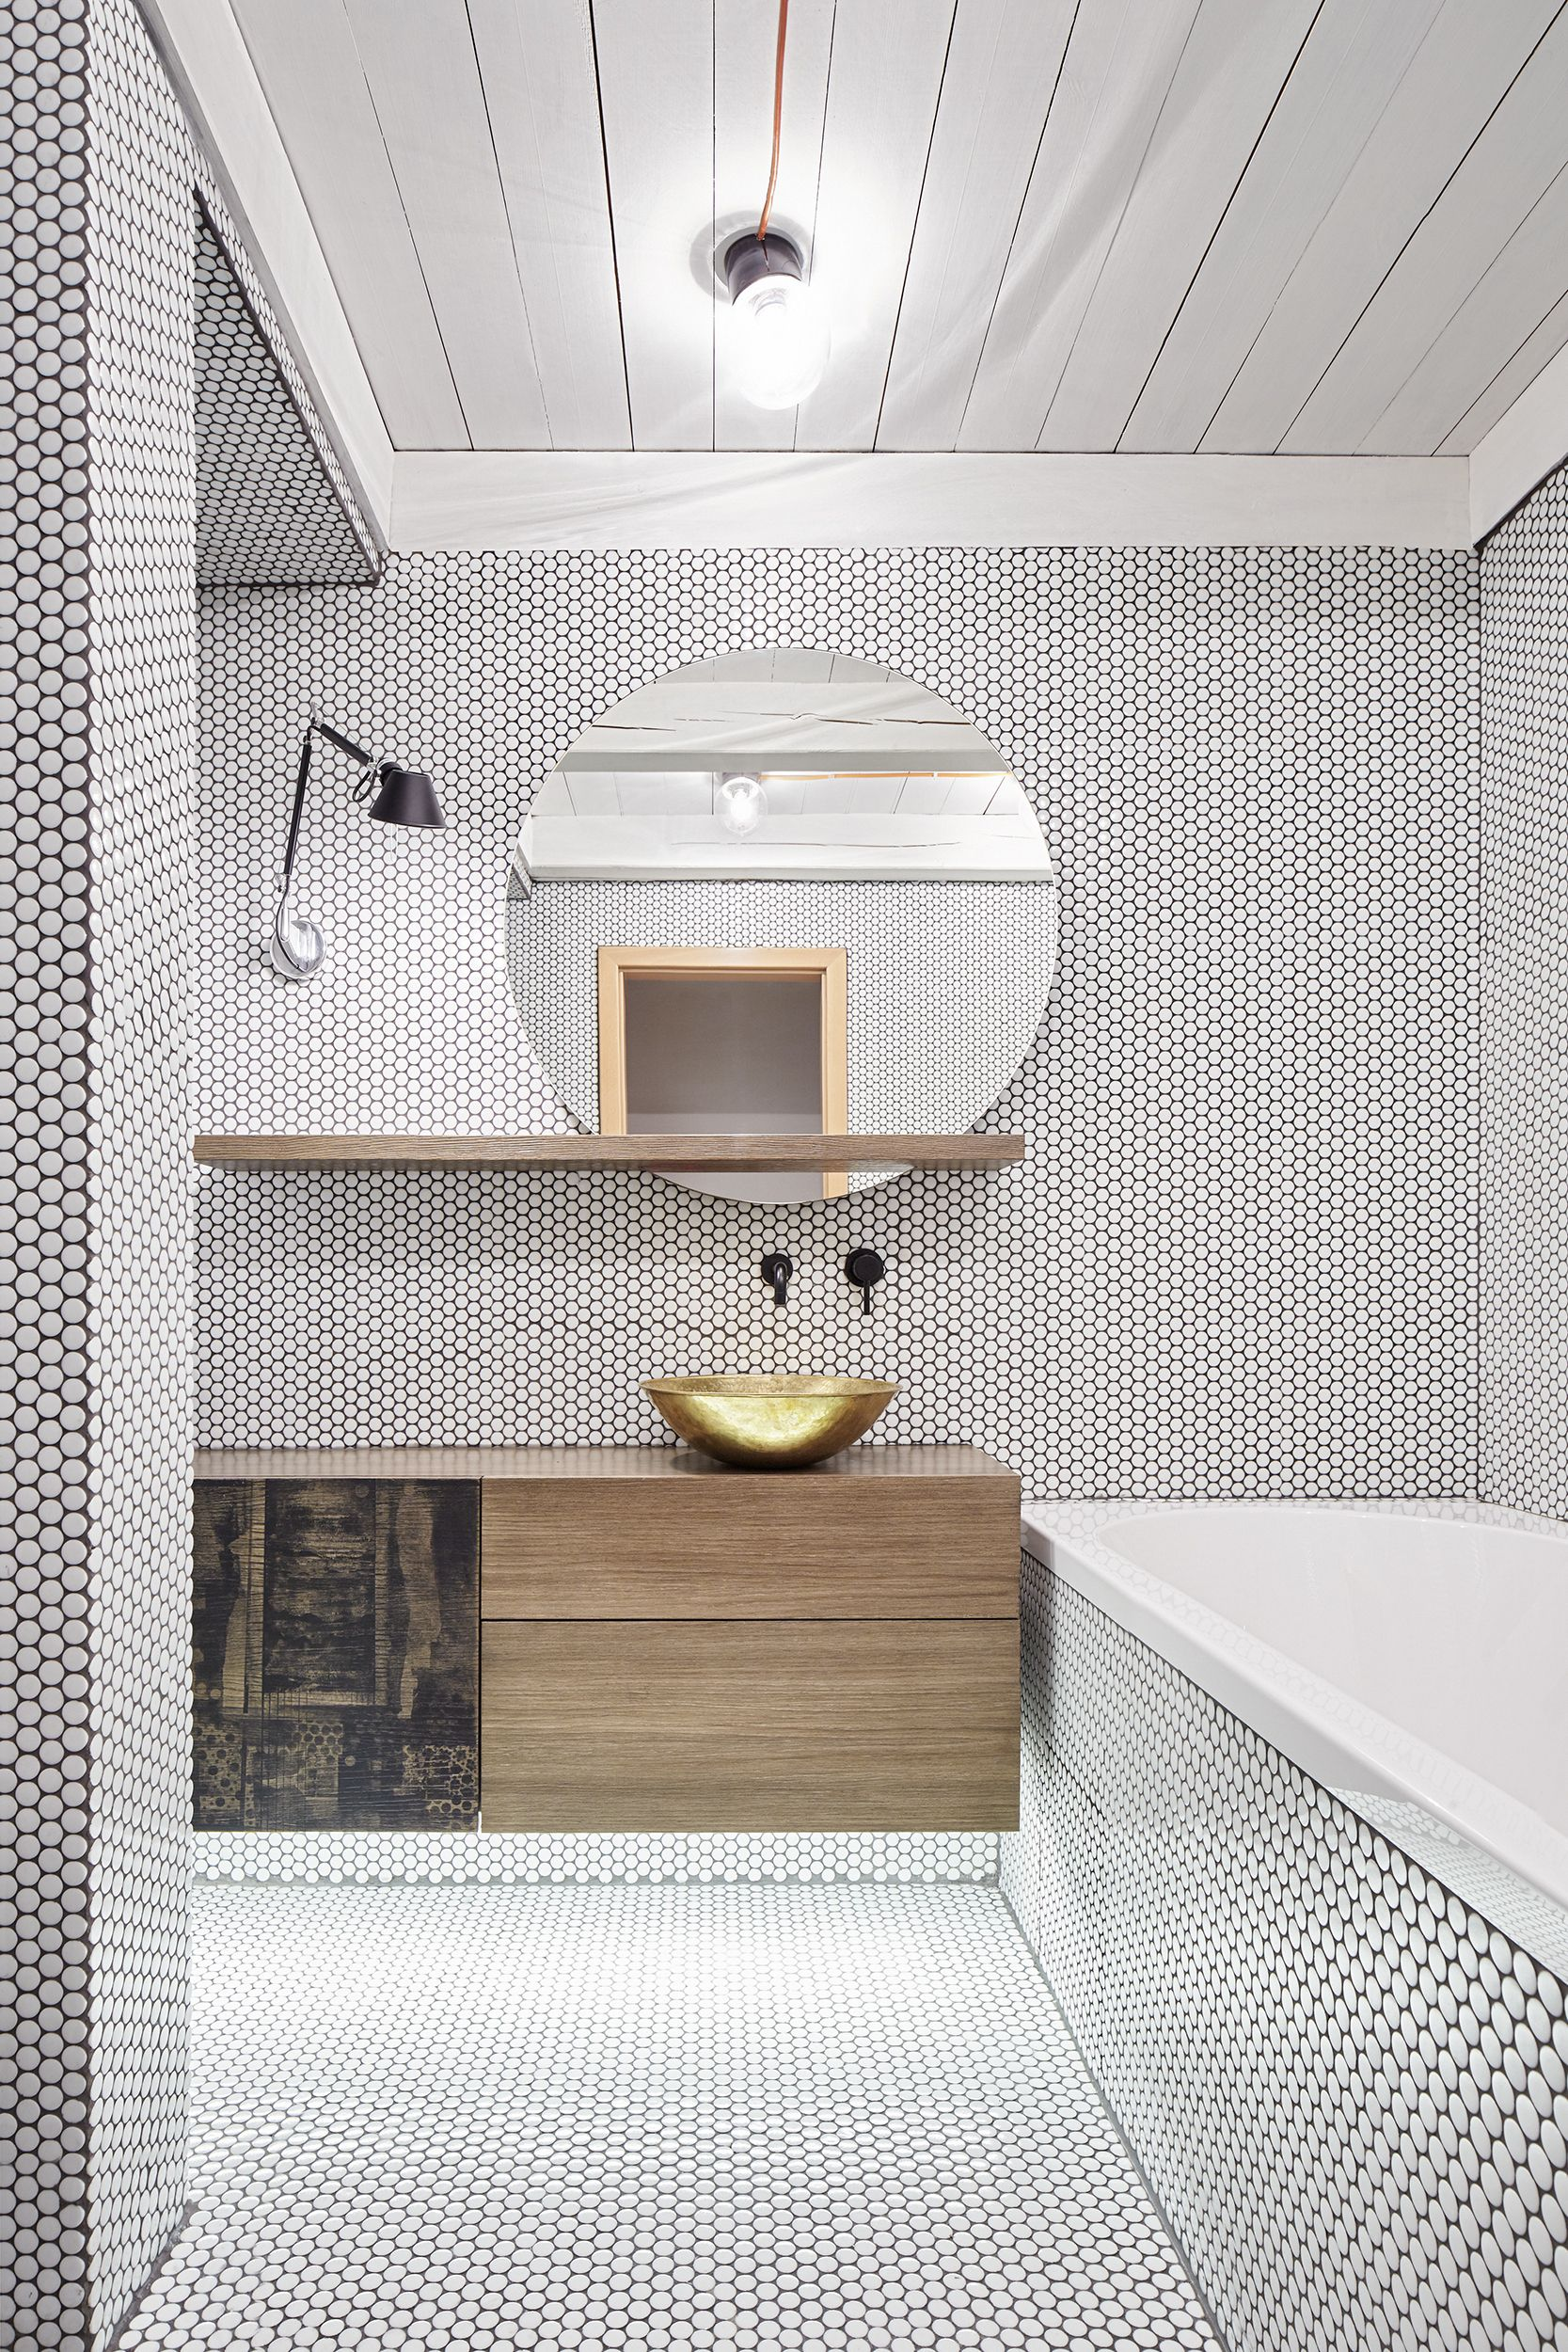 Articles About Sleek Kitchen And Double Bathroom Renovation Prague On  Dwell.com